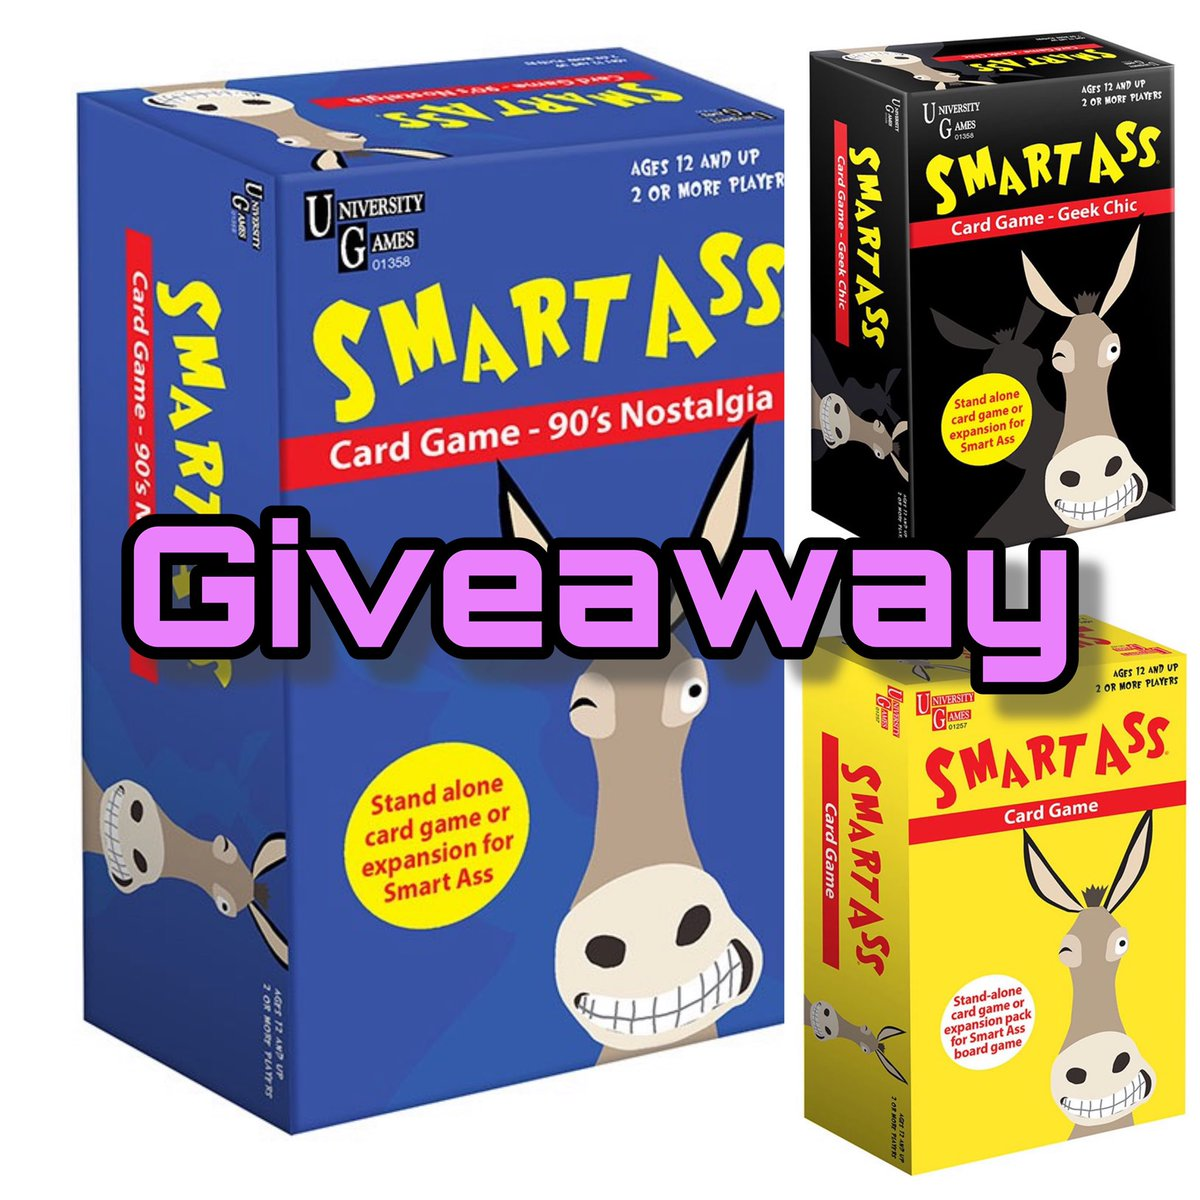 GIVEAWAY   TO ENTER: #RT #FOLLOW  @CuddleFairy & @ugamesUK   I have a 'Smart Ass Mini Games' bundle up for grabs! Great for travelling!!  T/c: closes 16/9/19, limited to residents of uk/irl. Full details:  https:// bit.ly/2ZnlMkS      #GiveawayAlert #giveaways #inittowinit #win <br>http://pic.twitter.com/xjHYQWKZEc